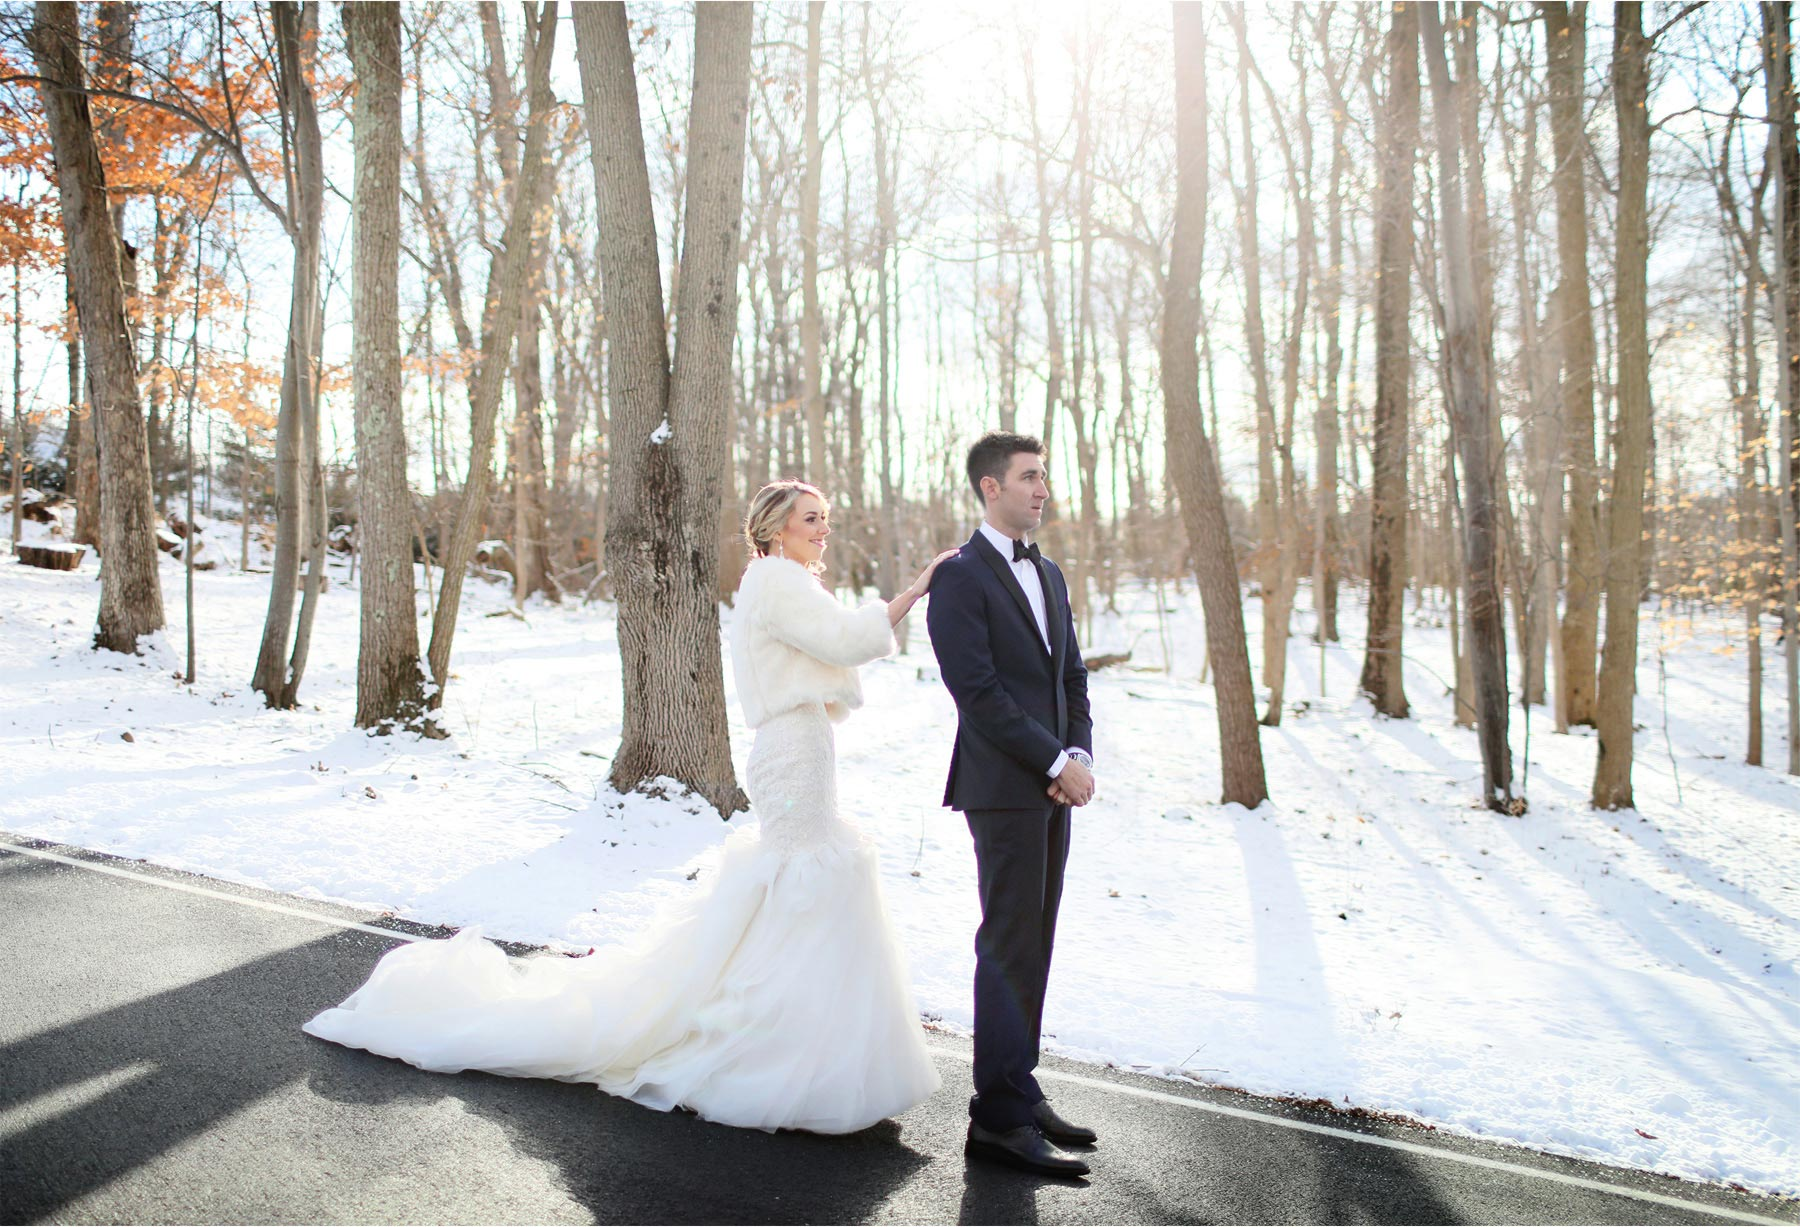 05-Watchung-New-Jersey-Wedding-Photographer-by-Andrew-Vick-Photography-Winter-Saint-Marys-Chuch-Stony-Hill-First-Meeting-Look-Bride-Groom-Fur-Coat-Alexia-and-Justin.jpg